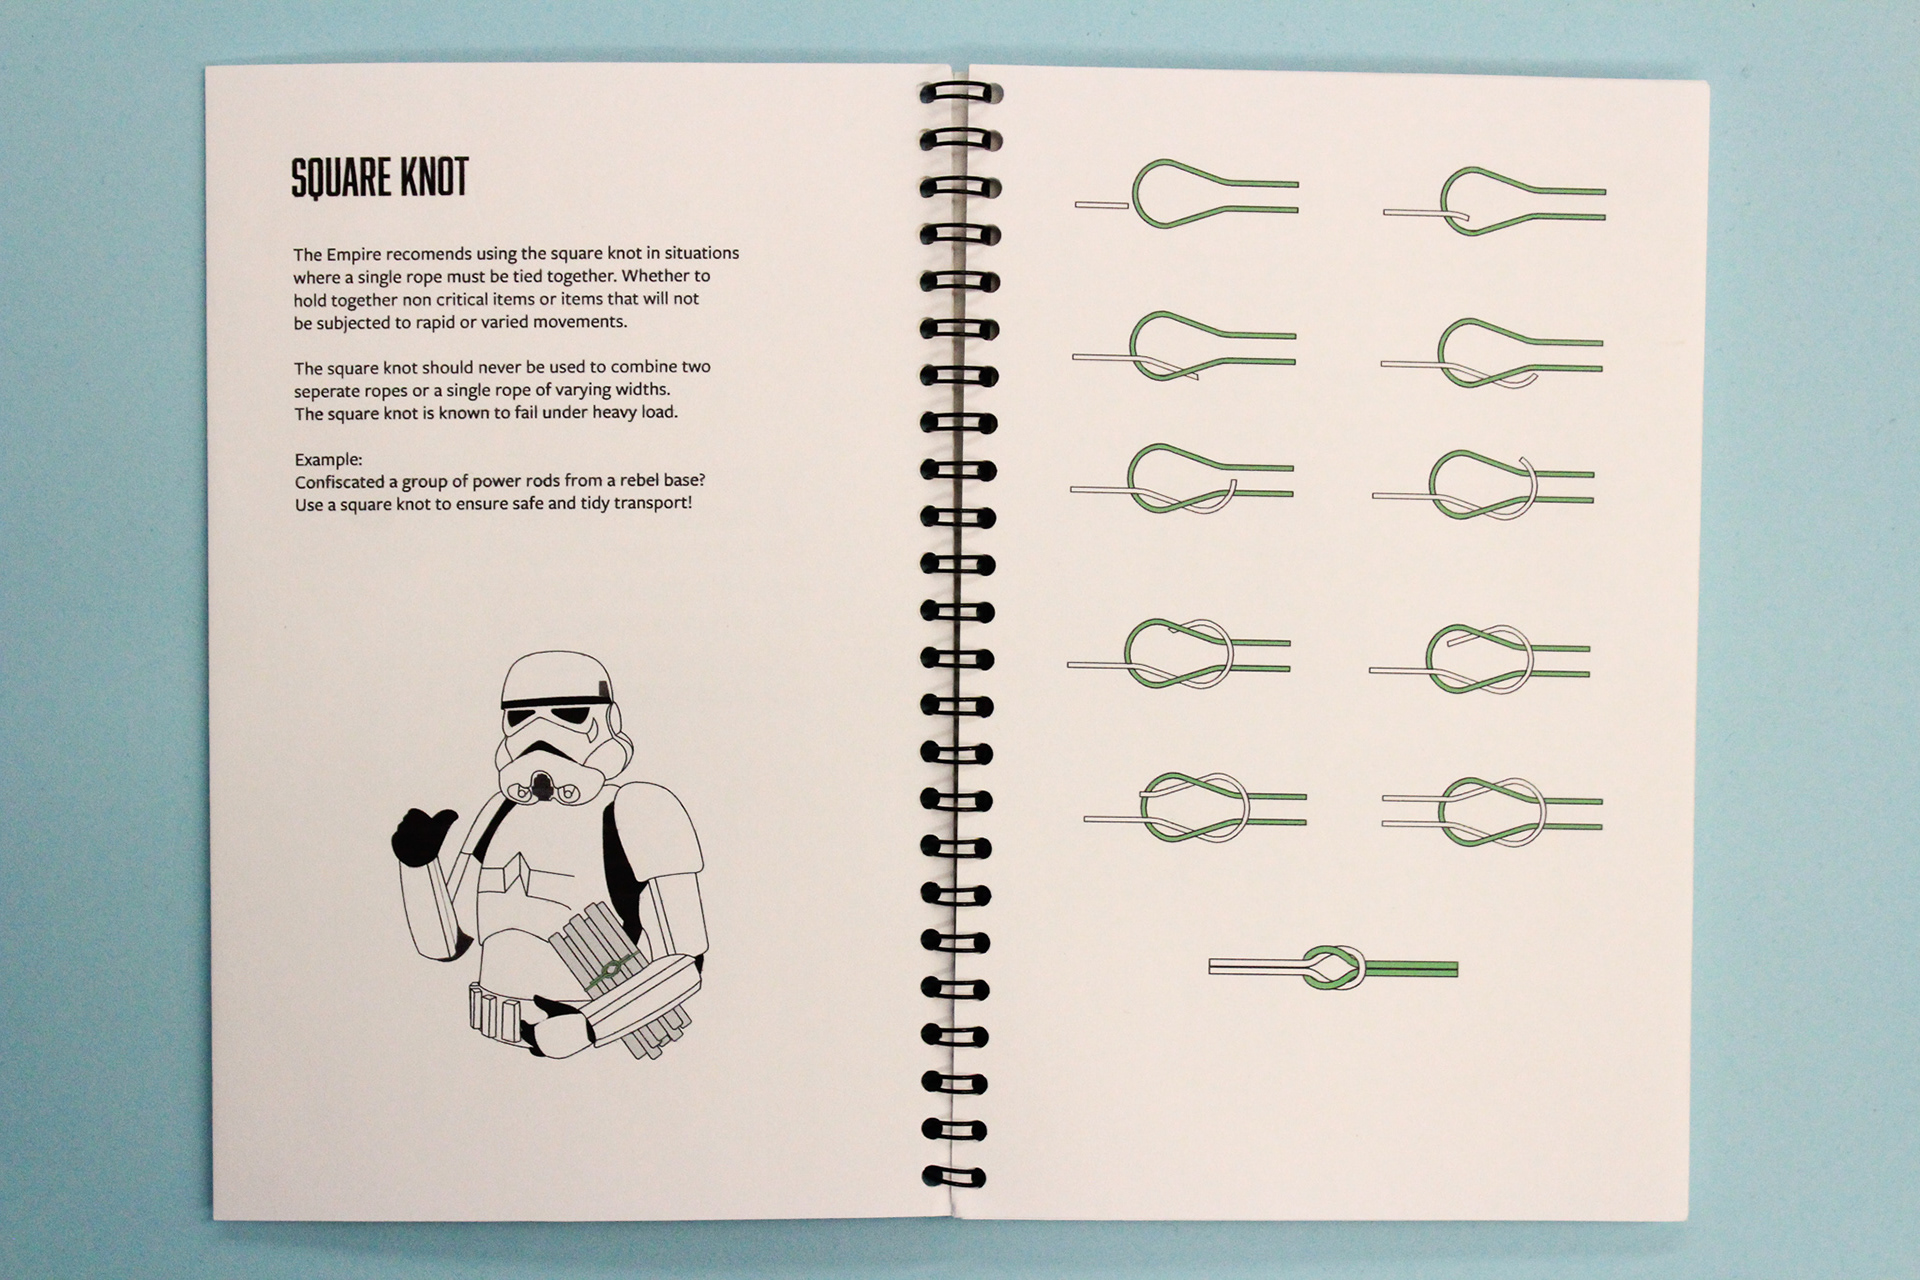 Rudolph Ward Graphic Design Galactic Empire Knot Handbook Square Diagram Covering Multiple Knots How To Tie Them And Their Respective Uses This Guide Is Great For Beginners Enthusiasts Alike